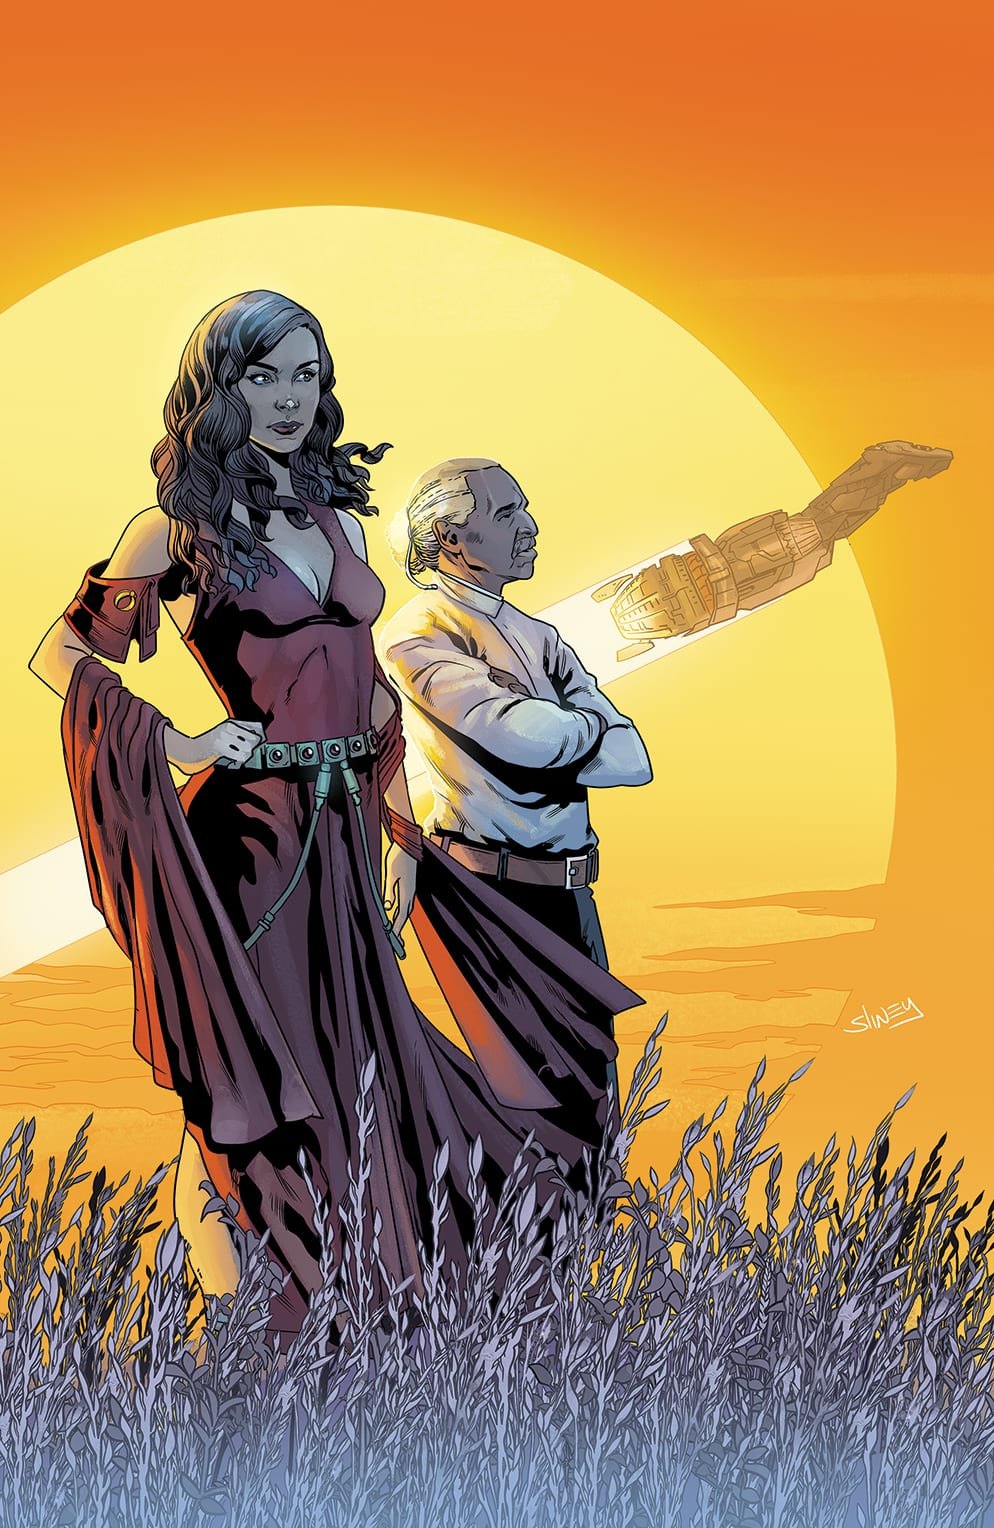 FIREFLY #10 Is A Strong Reminder The Battle Never Ends 3